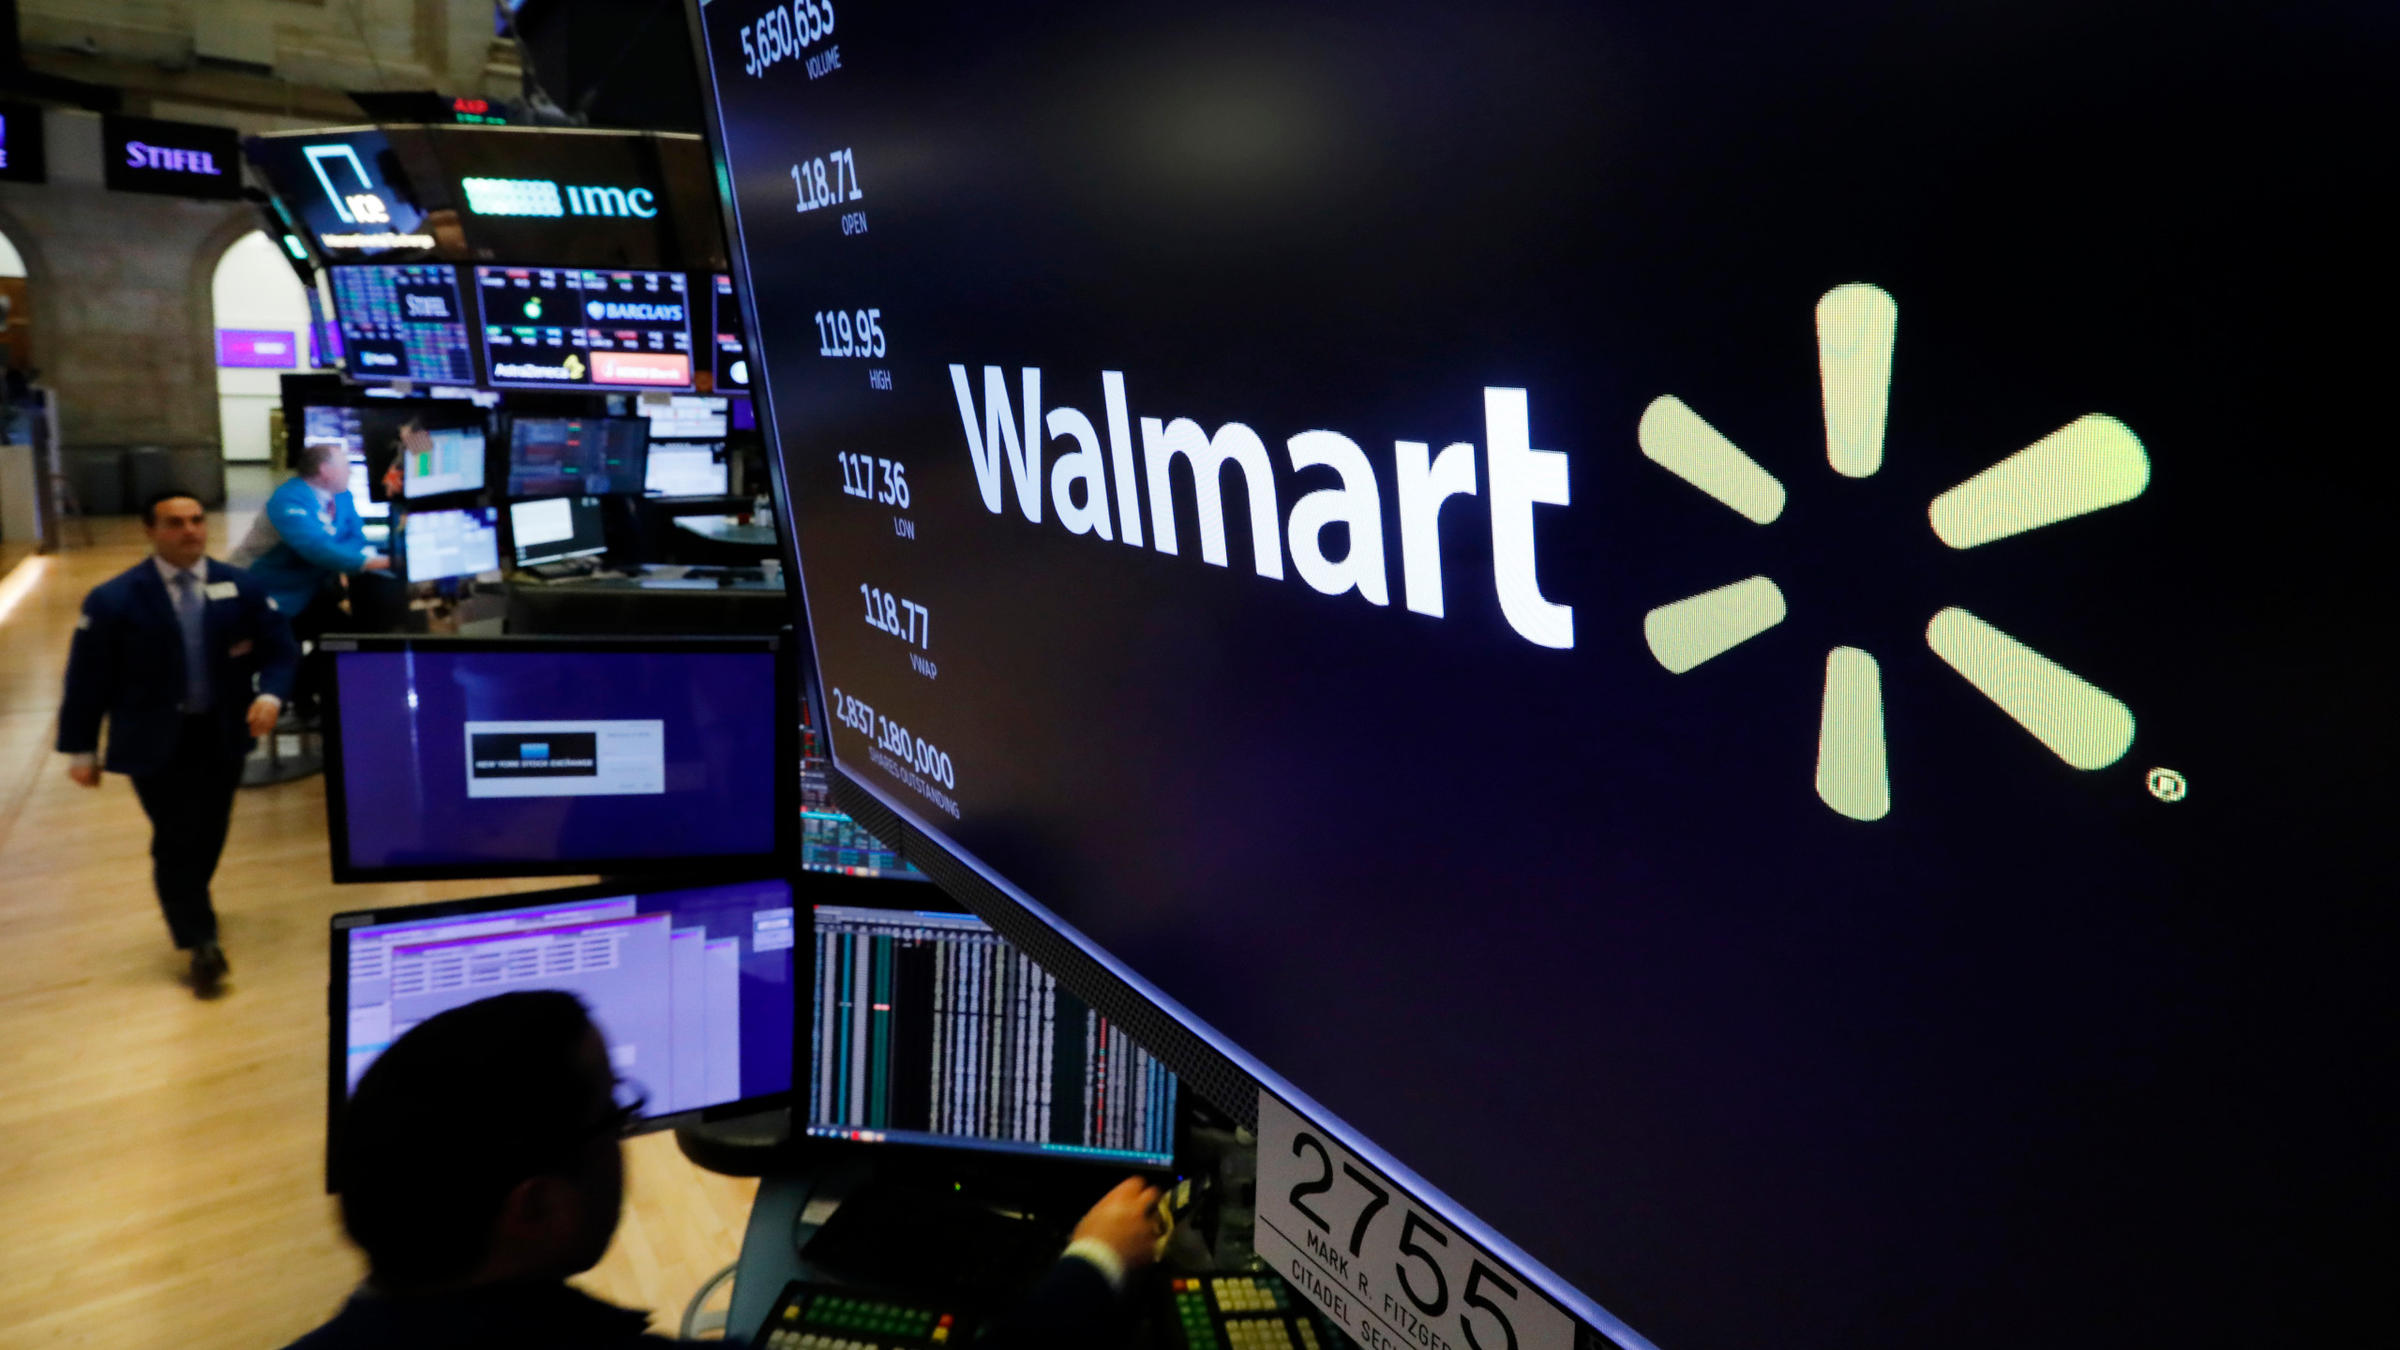 Walmart implements emergency leave policy after associate tests positive for COVID-19